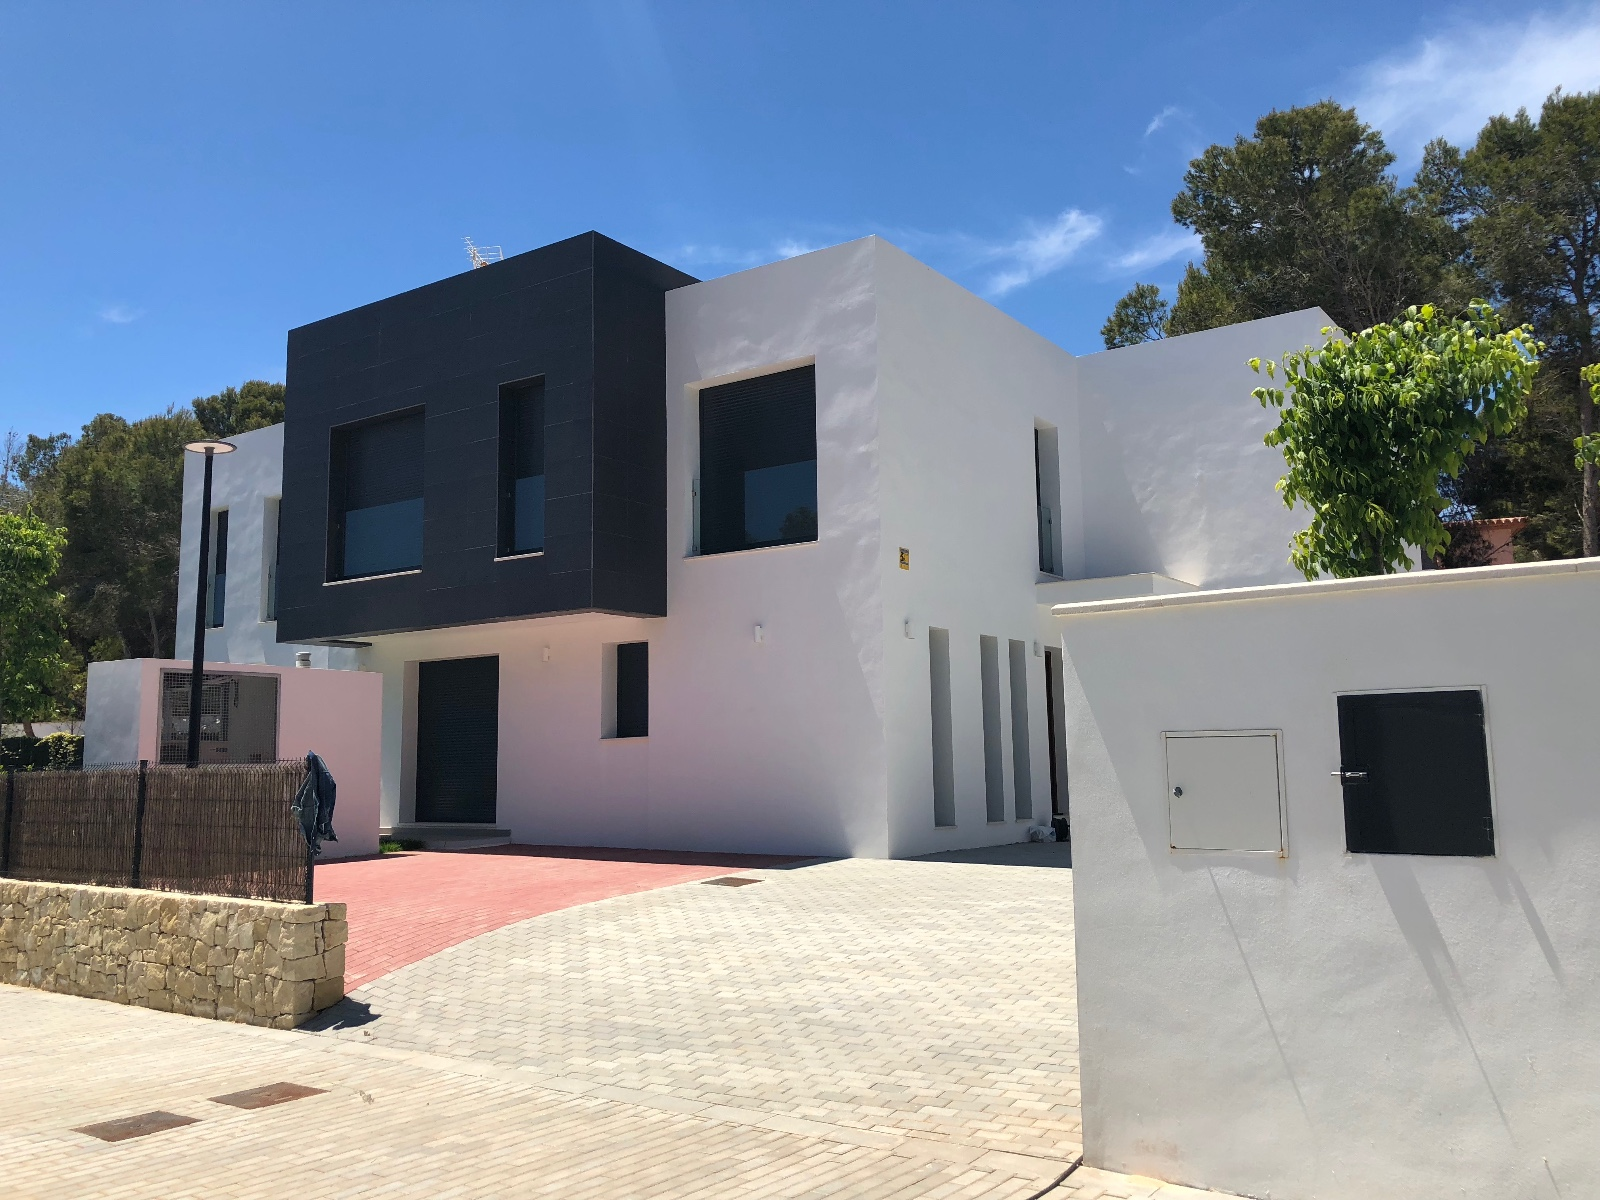 Beautifully designed semi detached villas in Moraira. One villa is already built and ready to be m,Spain